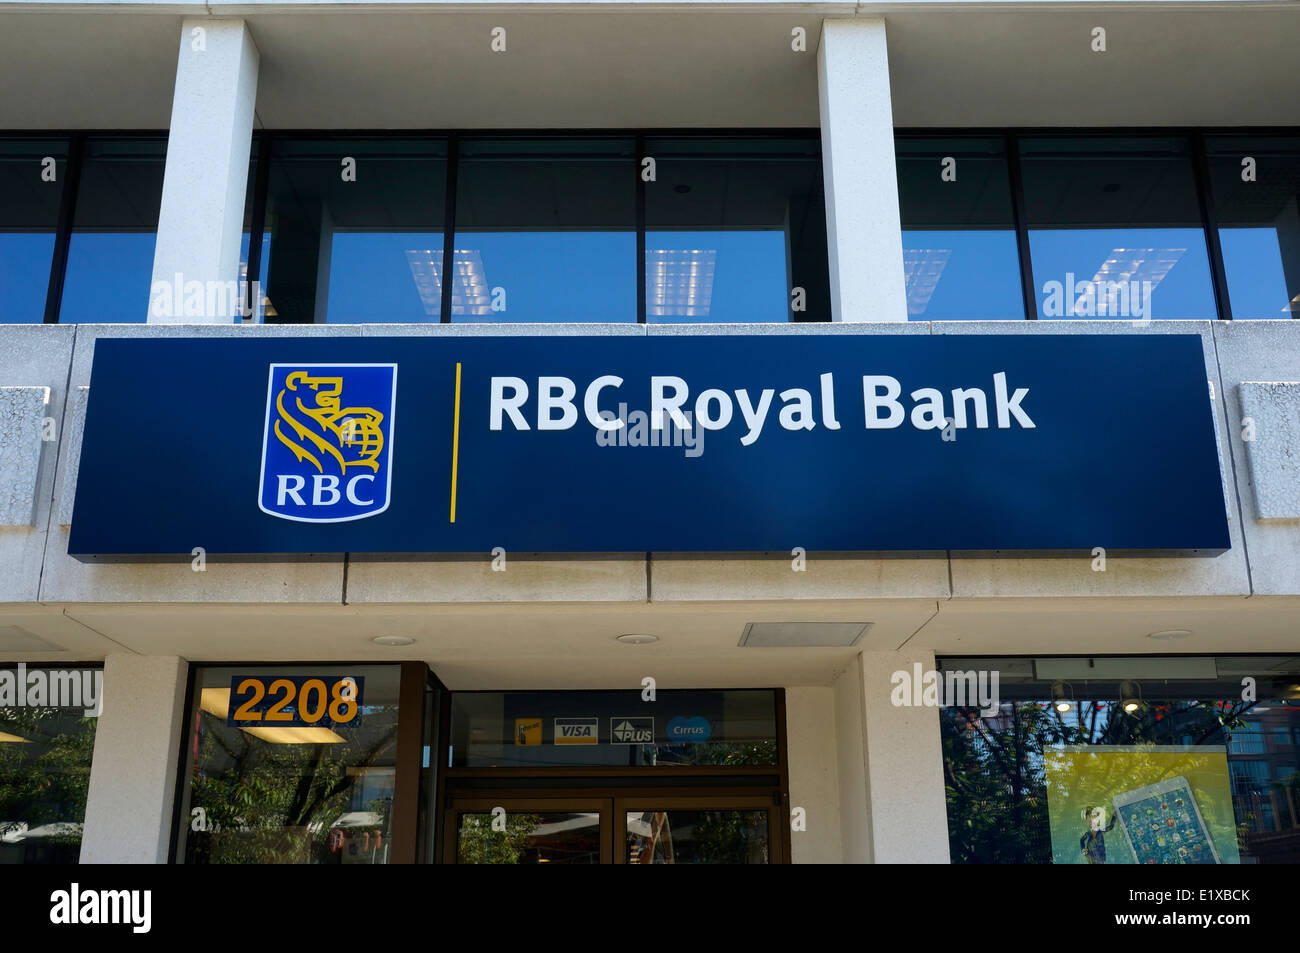 Rbc Royal Bank Of Canada Sign In Kerrisdale, Vancouver, Bc, Canada  Stock